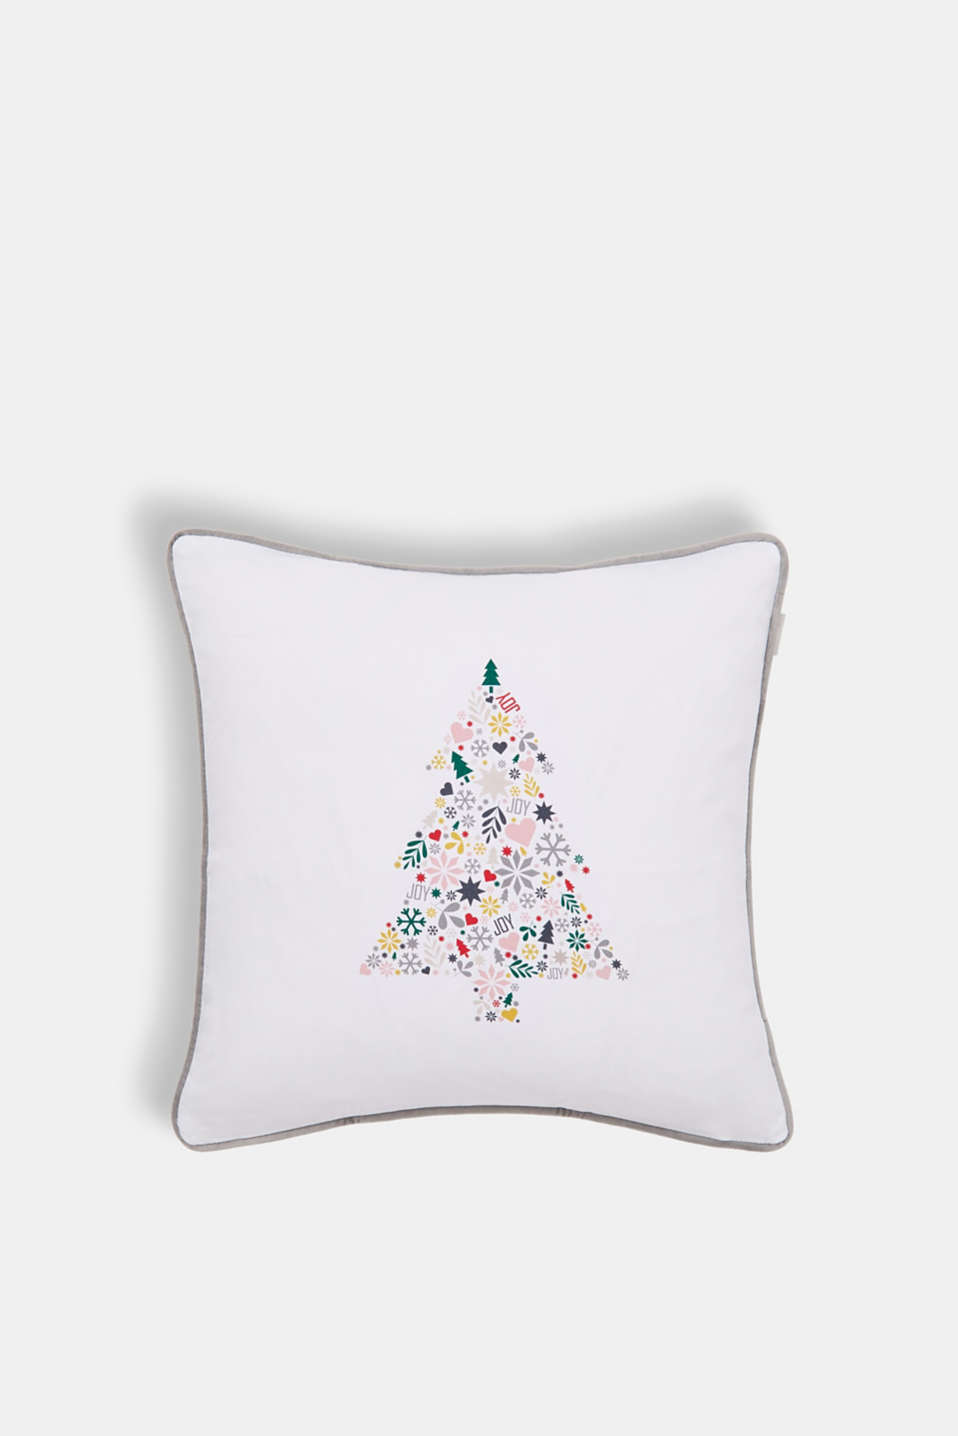 Esprit - Reversible cushion cover made of 100% cotton